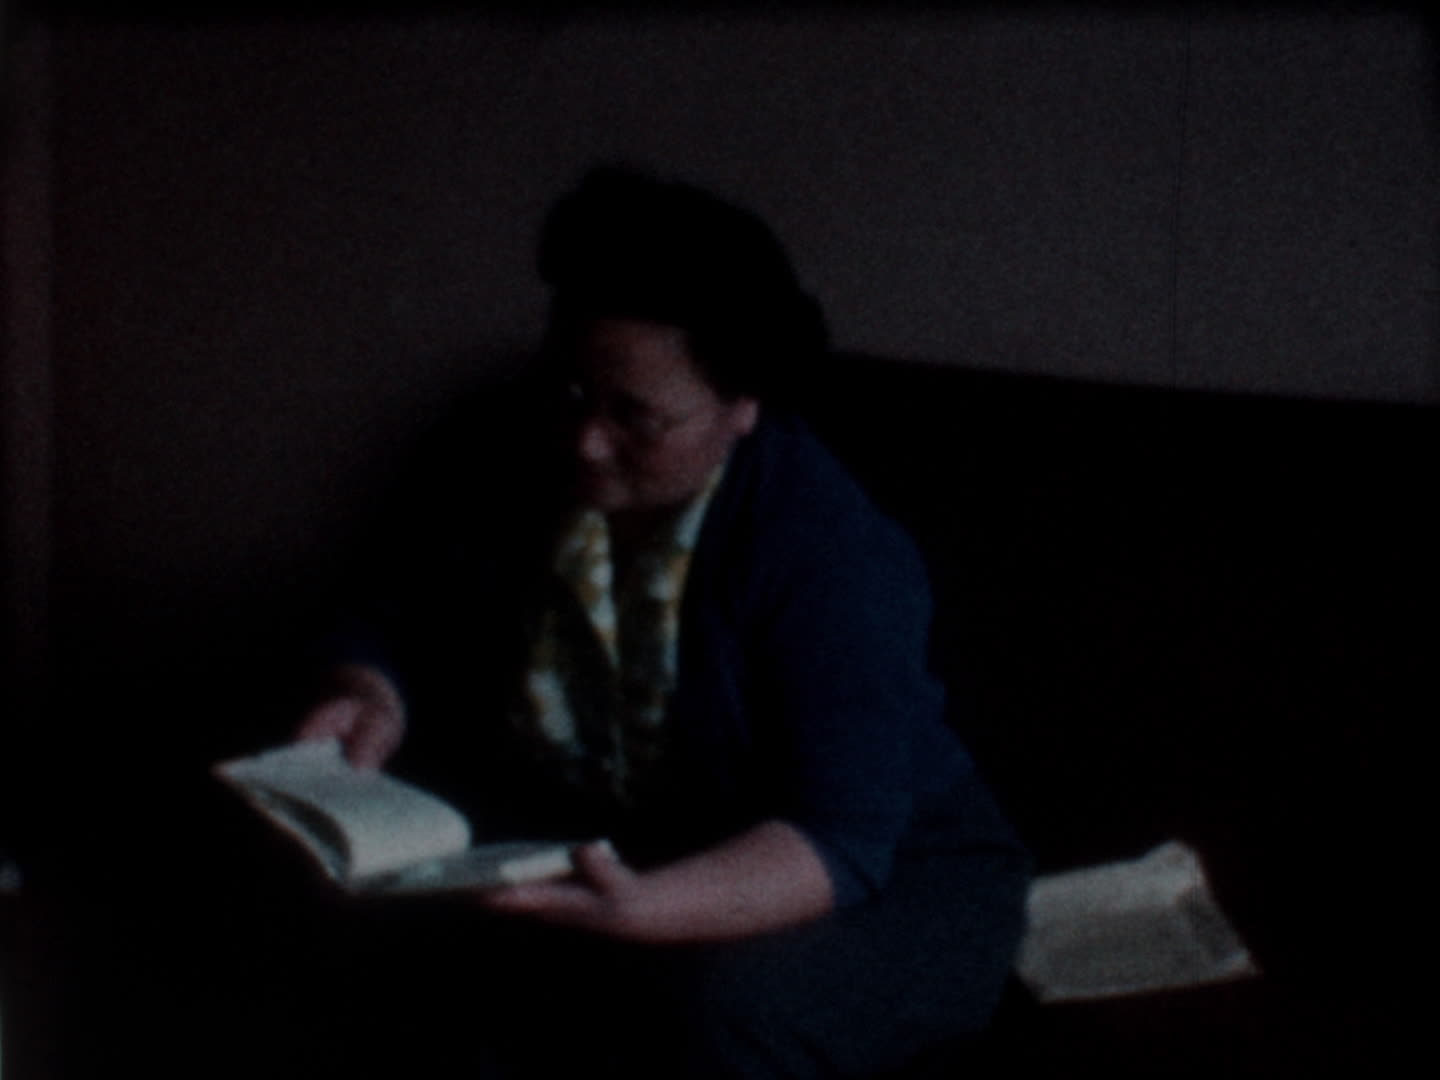 Watada family videos : woman reading a book